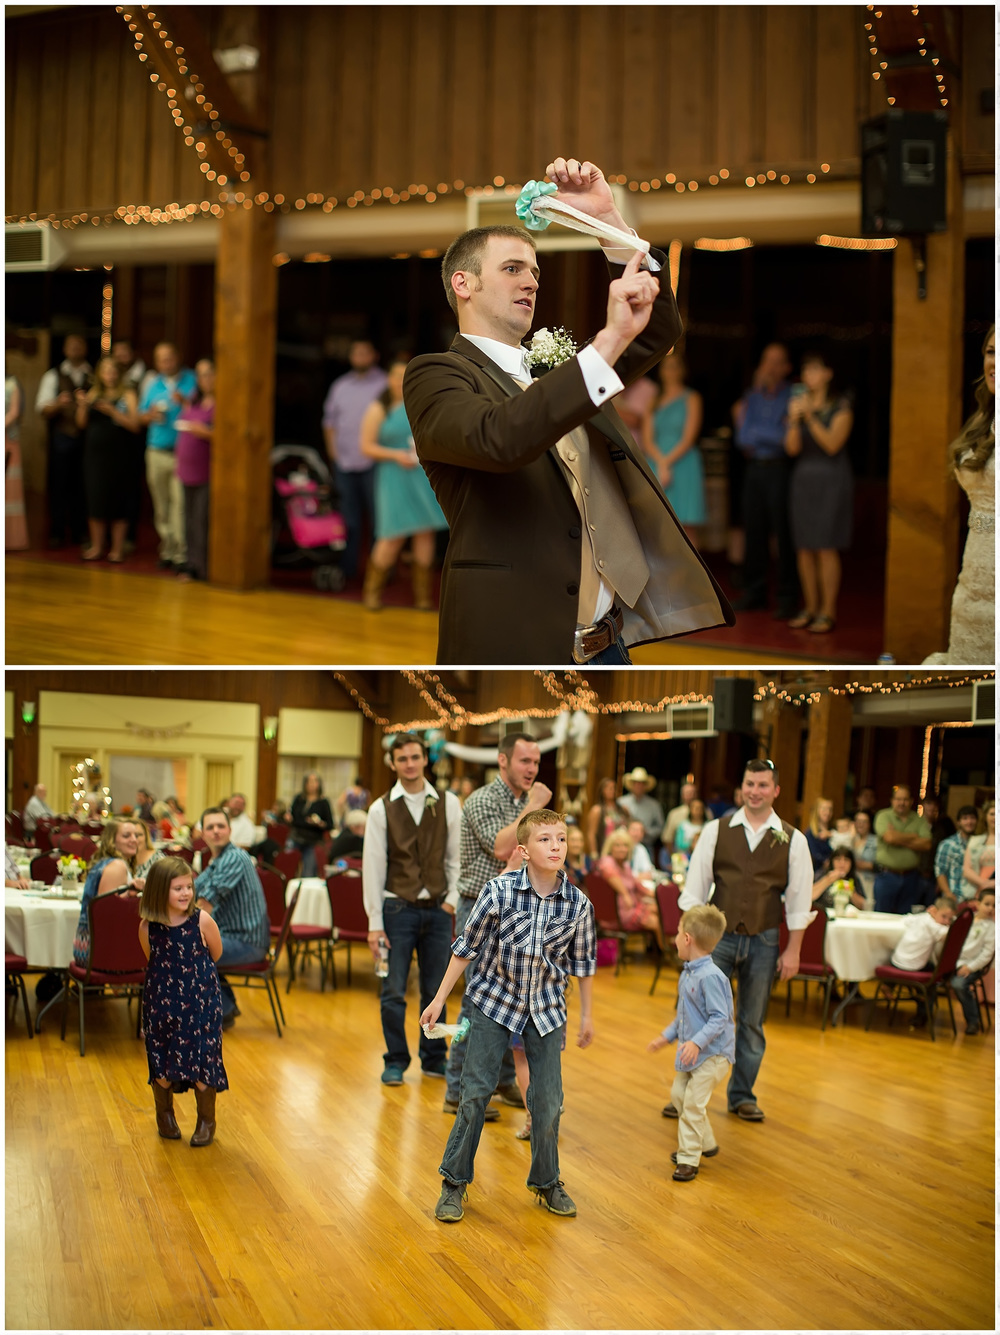 McCoy_ElKarubah_Shreveport_Wedding_24.jpg